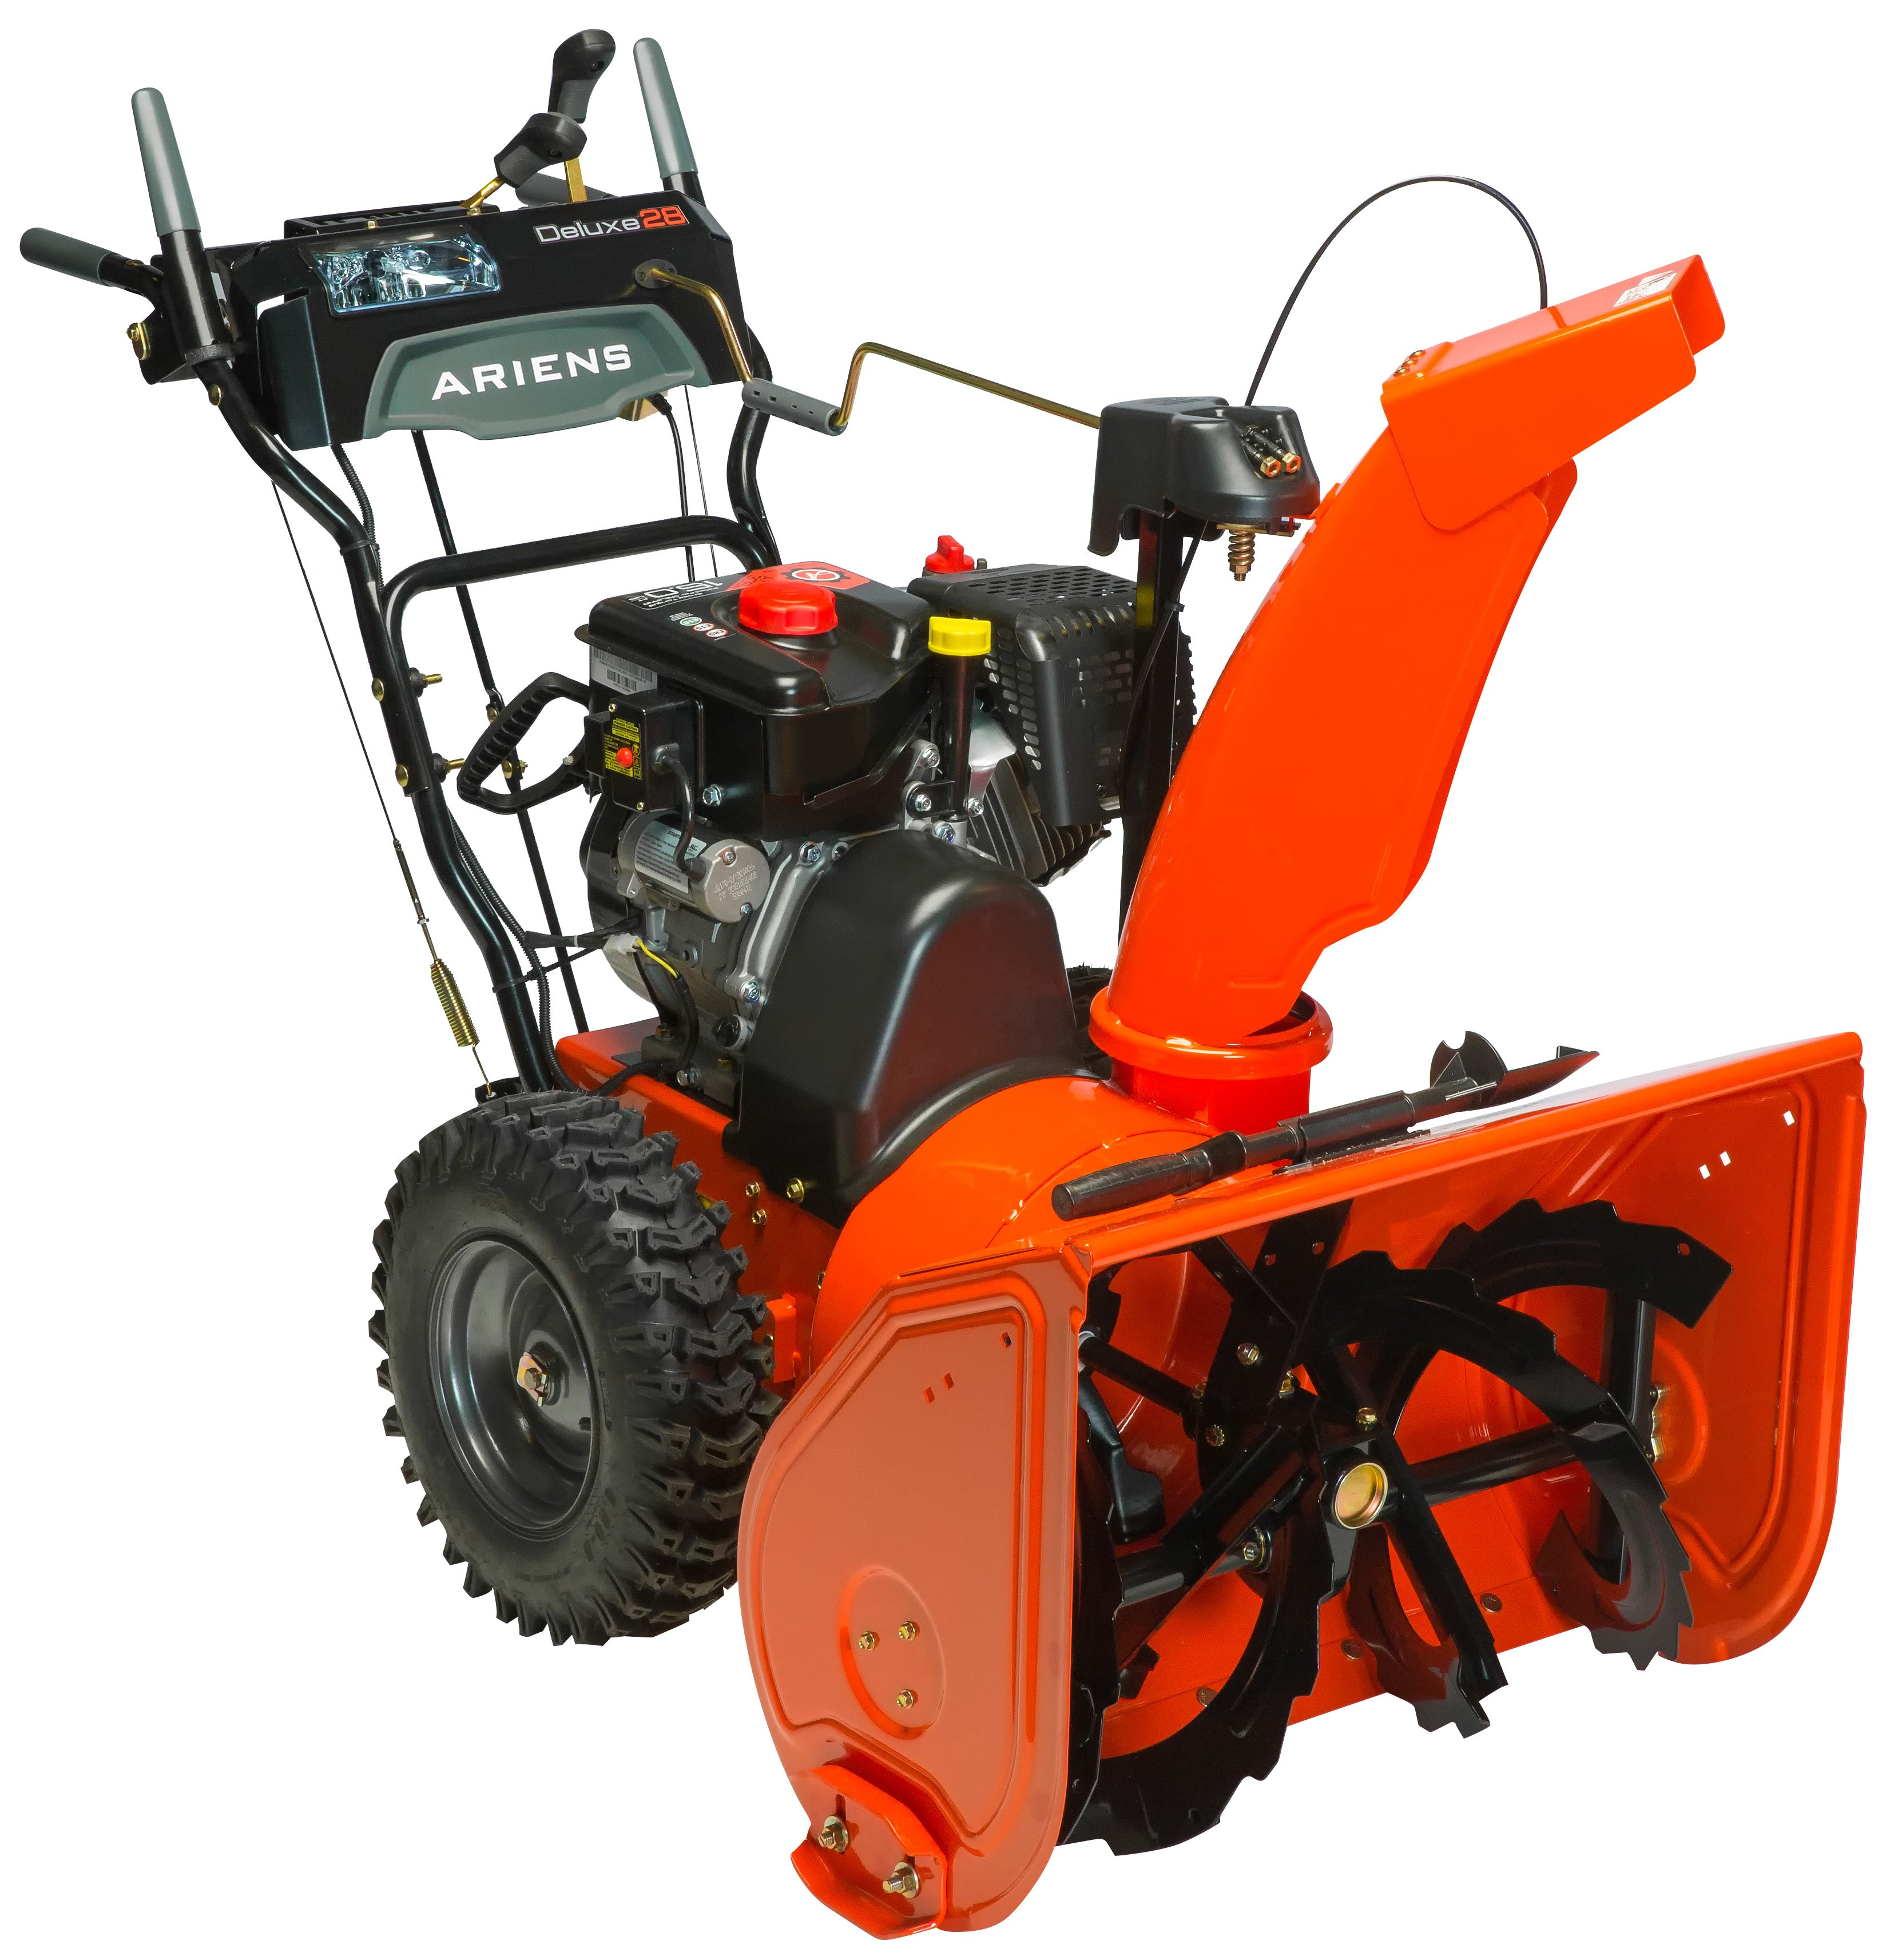 "Ariens Deluxe 28(28"") 254cc Two-Stage Snow Blower"